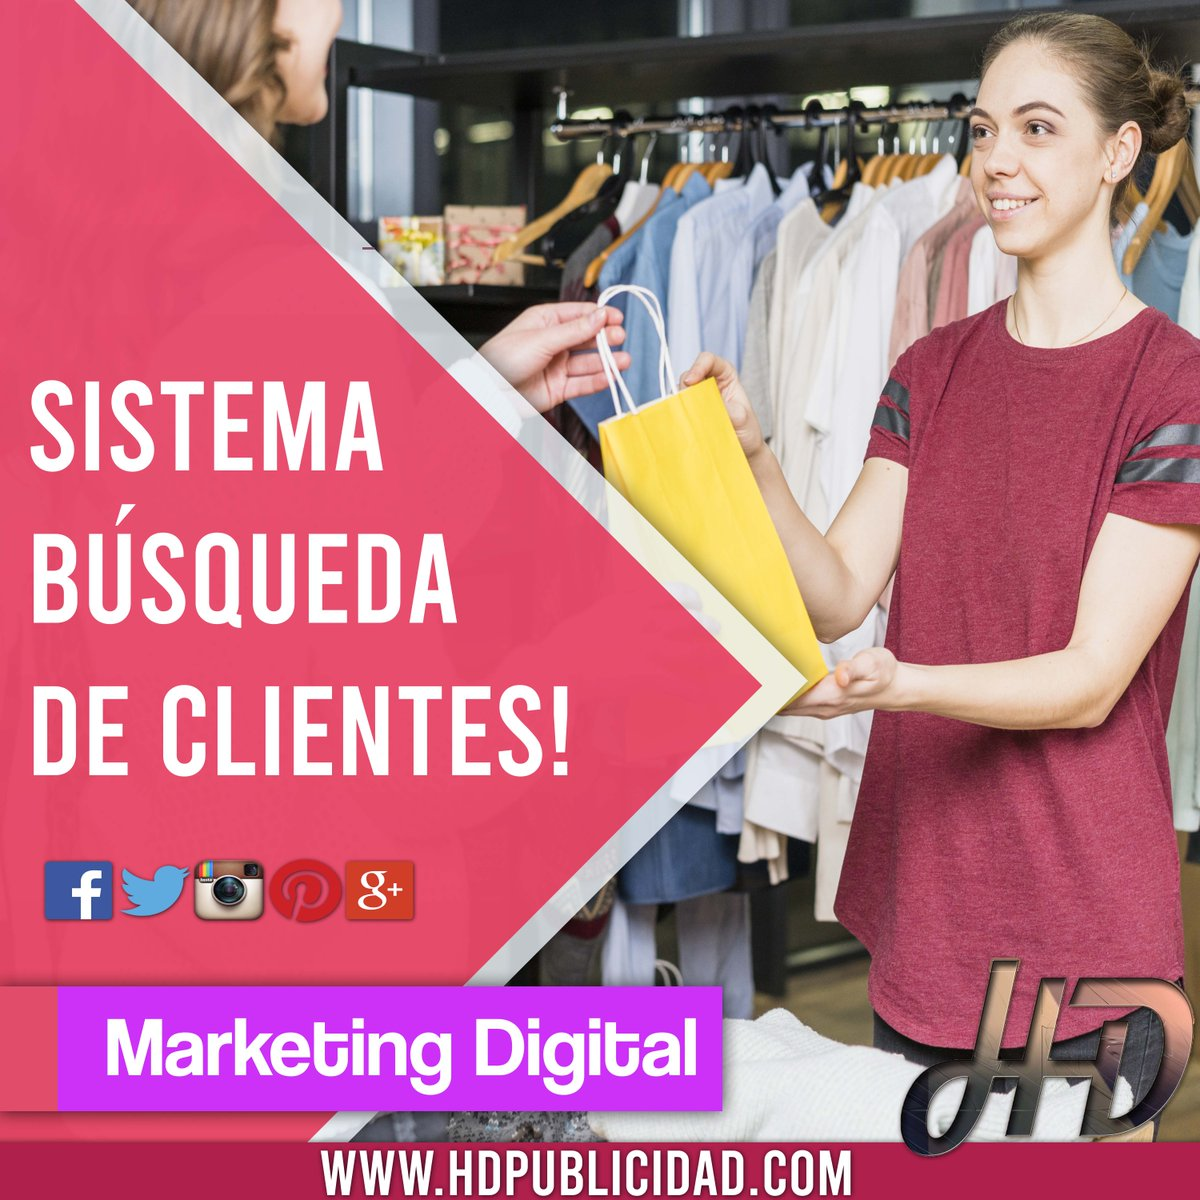 En #Hd te ayudamos a conseguir #Nuevos #Clientes🙌 📊💪 ~Aumentamos tus #Ventas📣~ >Marketing Digital >Aumentamos tus ventas >Publicidad en Redes sociales Consultanos HD Agencia Digital https://t.co/KHsJe35Vor ▶️📱Whatsapp: 0341-6663229 info@hdpublicidad.com https://t.co/W66Zj0vJiE